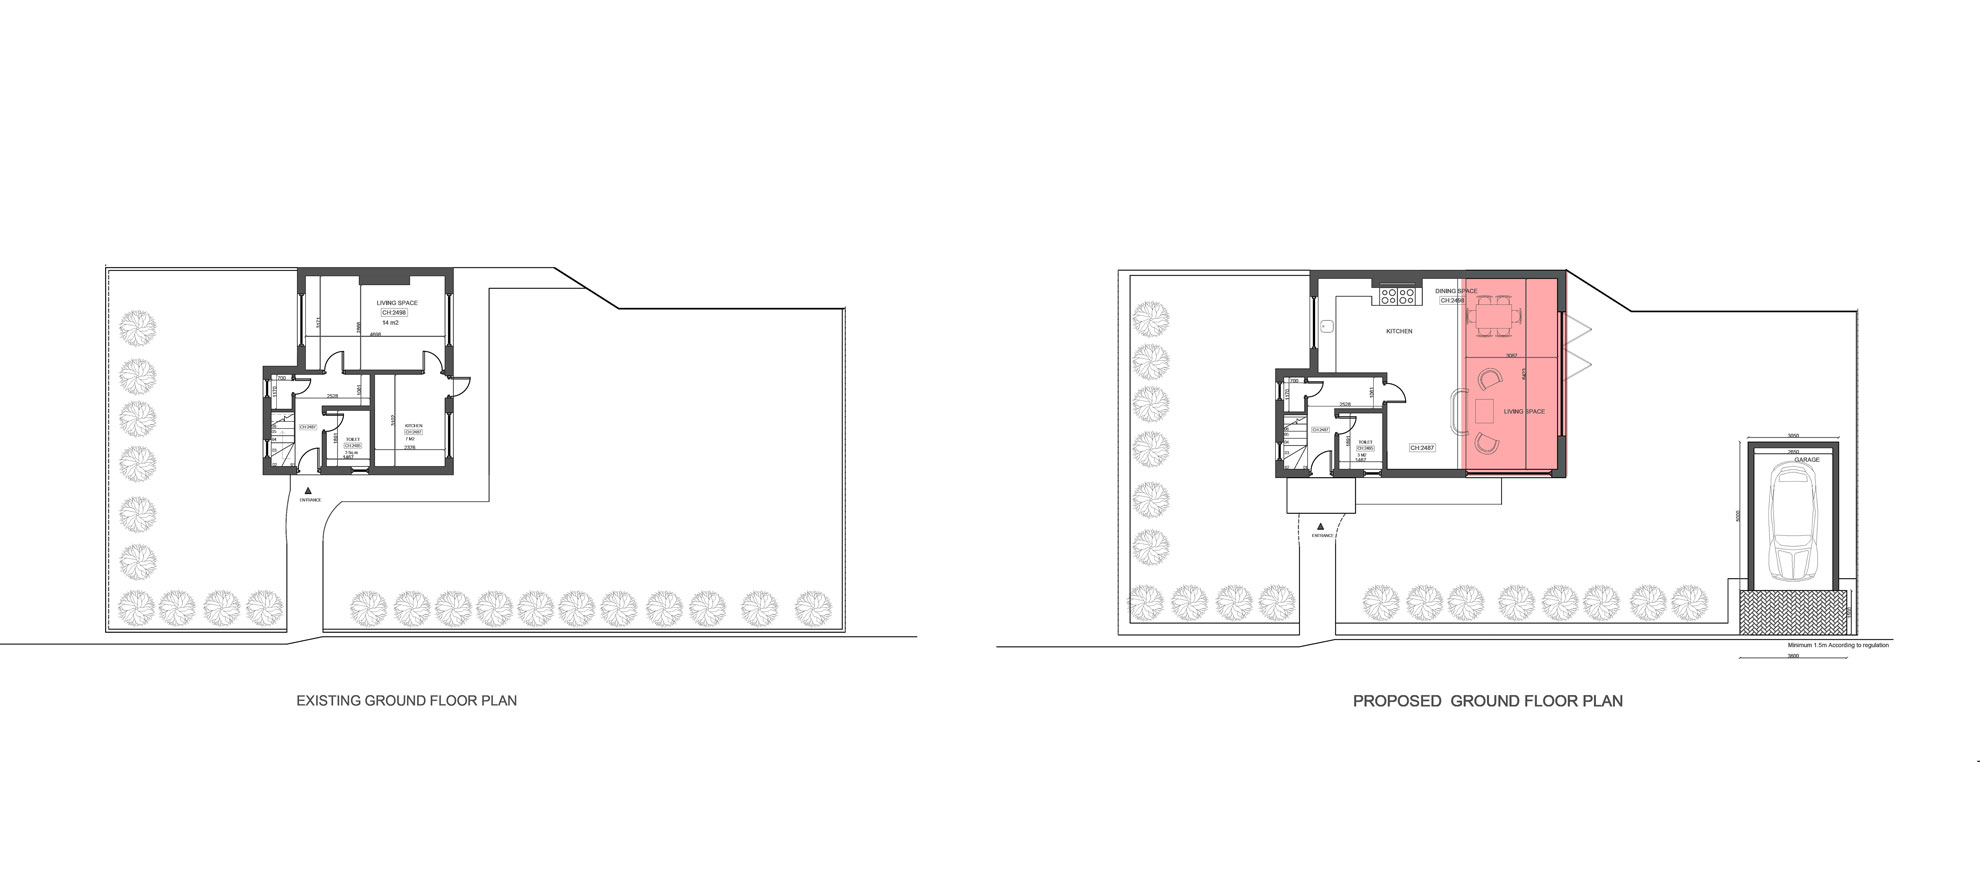 Roof-Terrace-&-Garage-conversion-in-Croydon-Ground-Floor-Plan